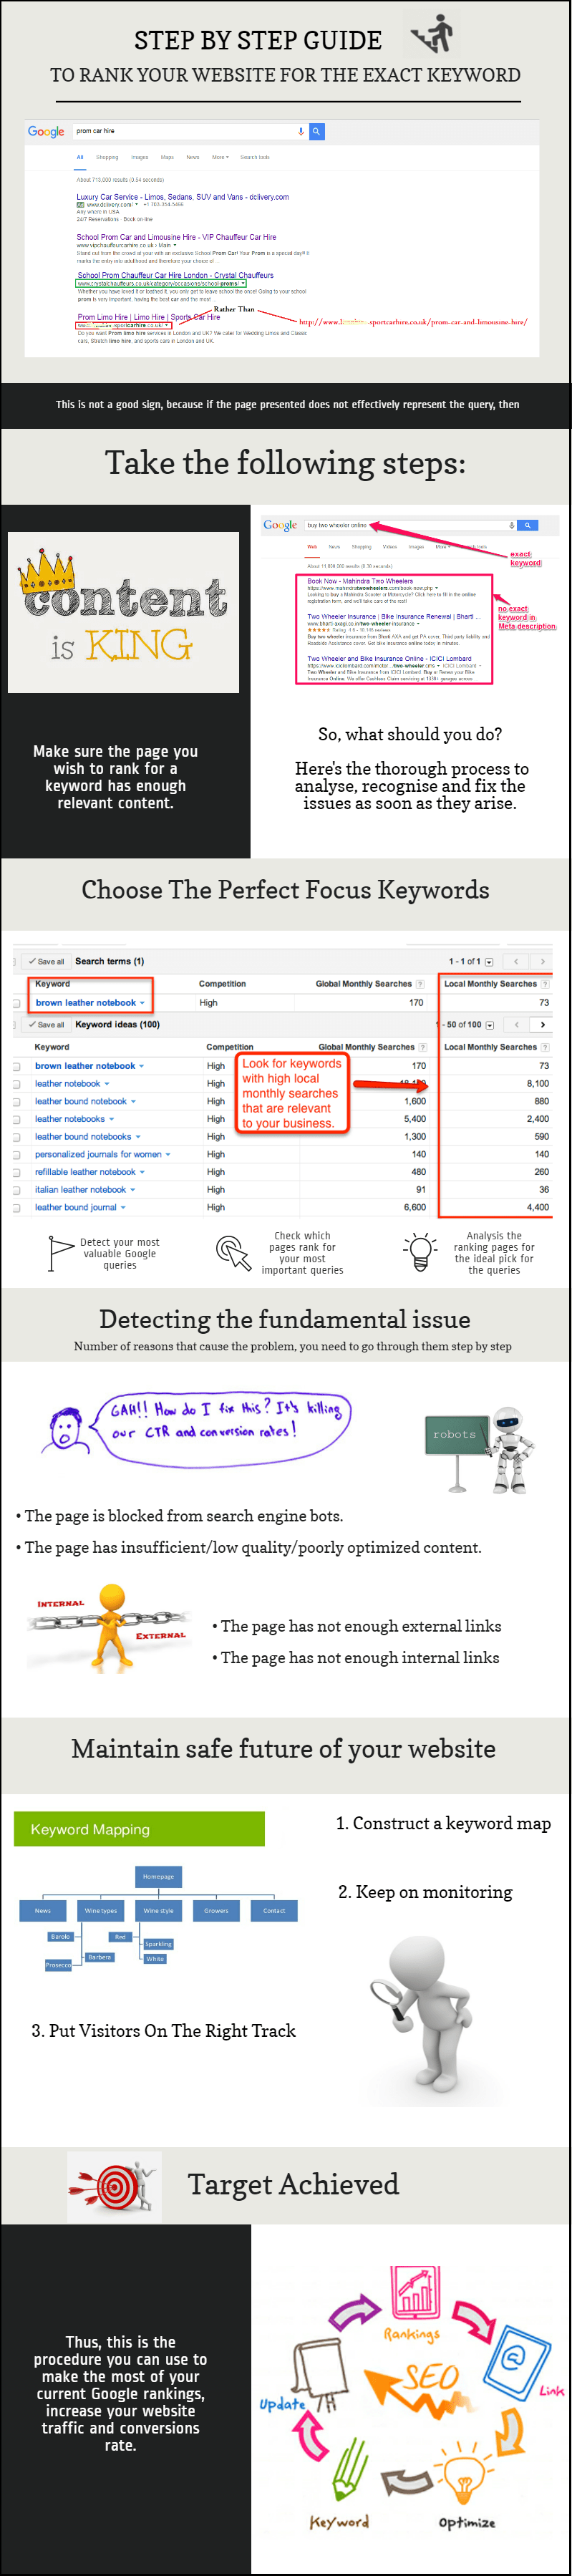 Fix: Wrong Page Ranking for an Important Keyword? [Infographic]